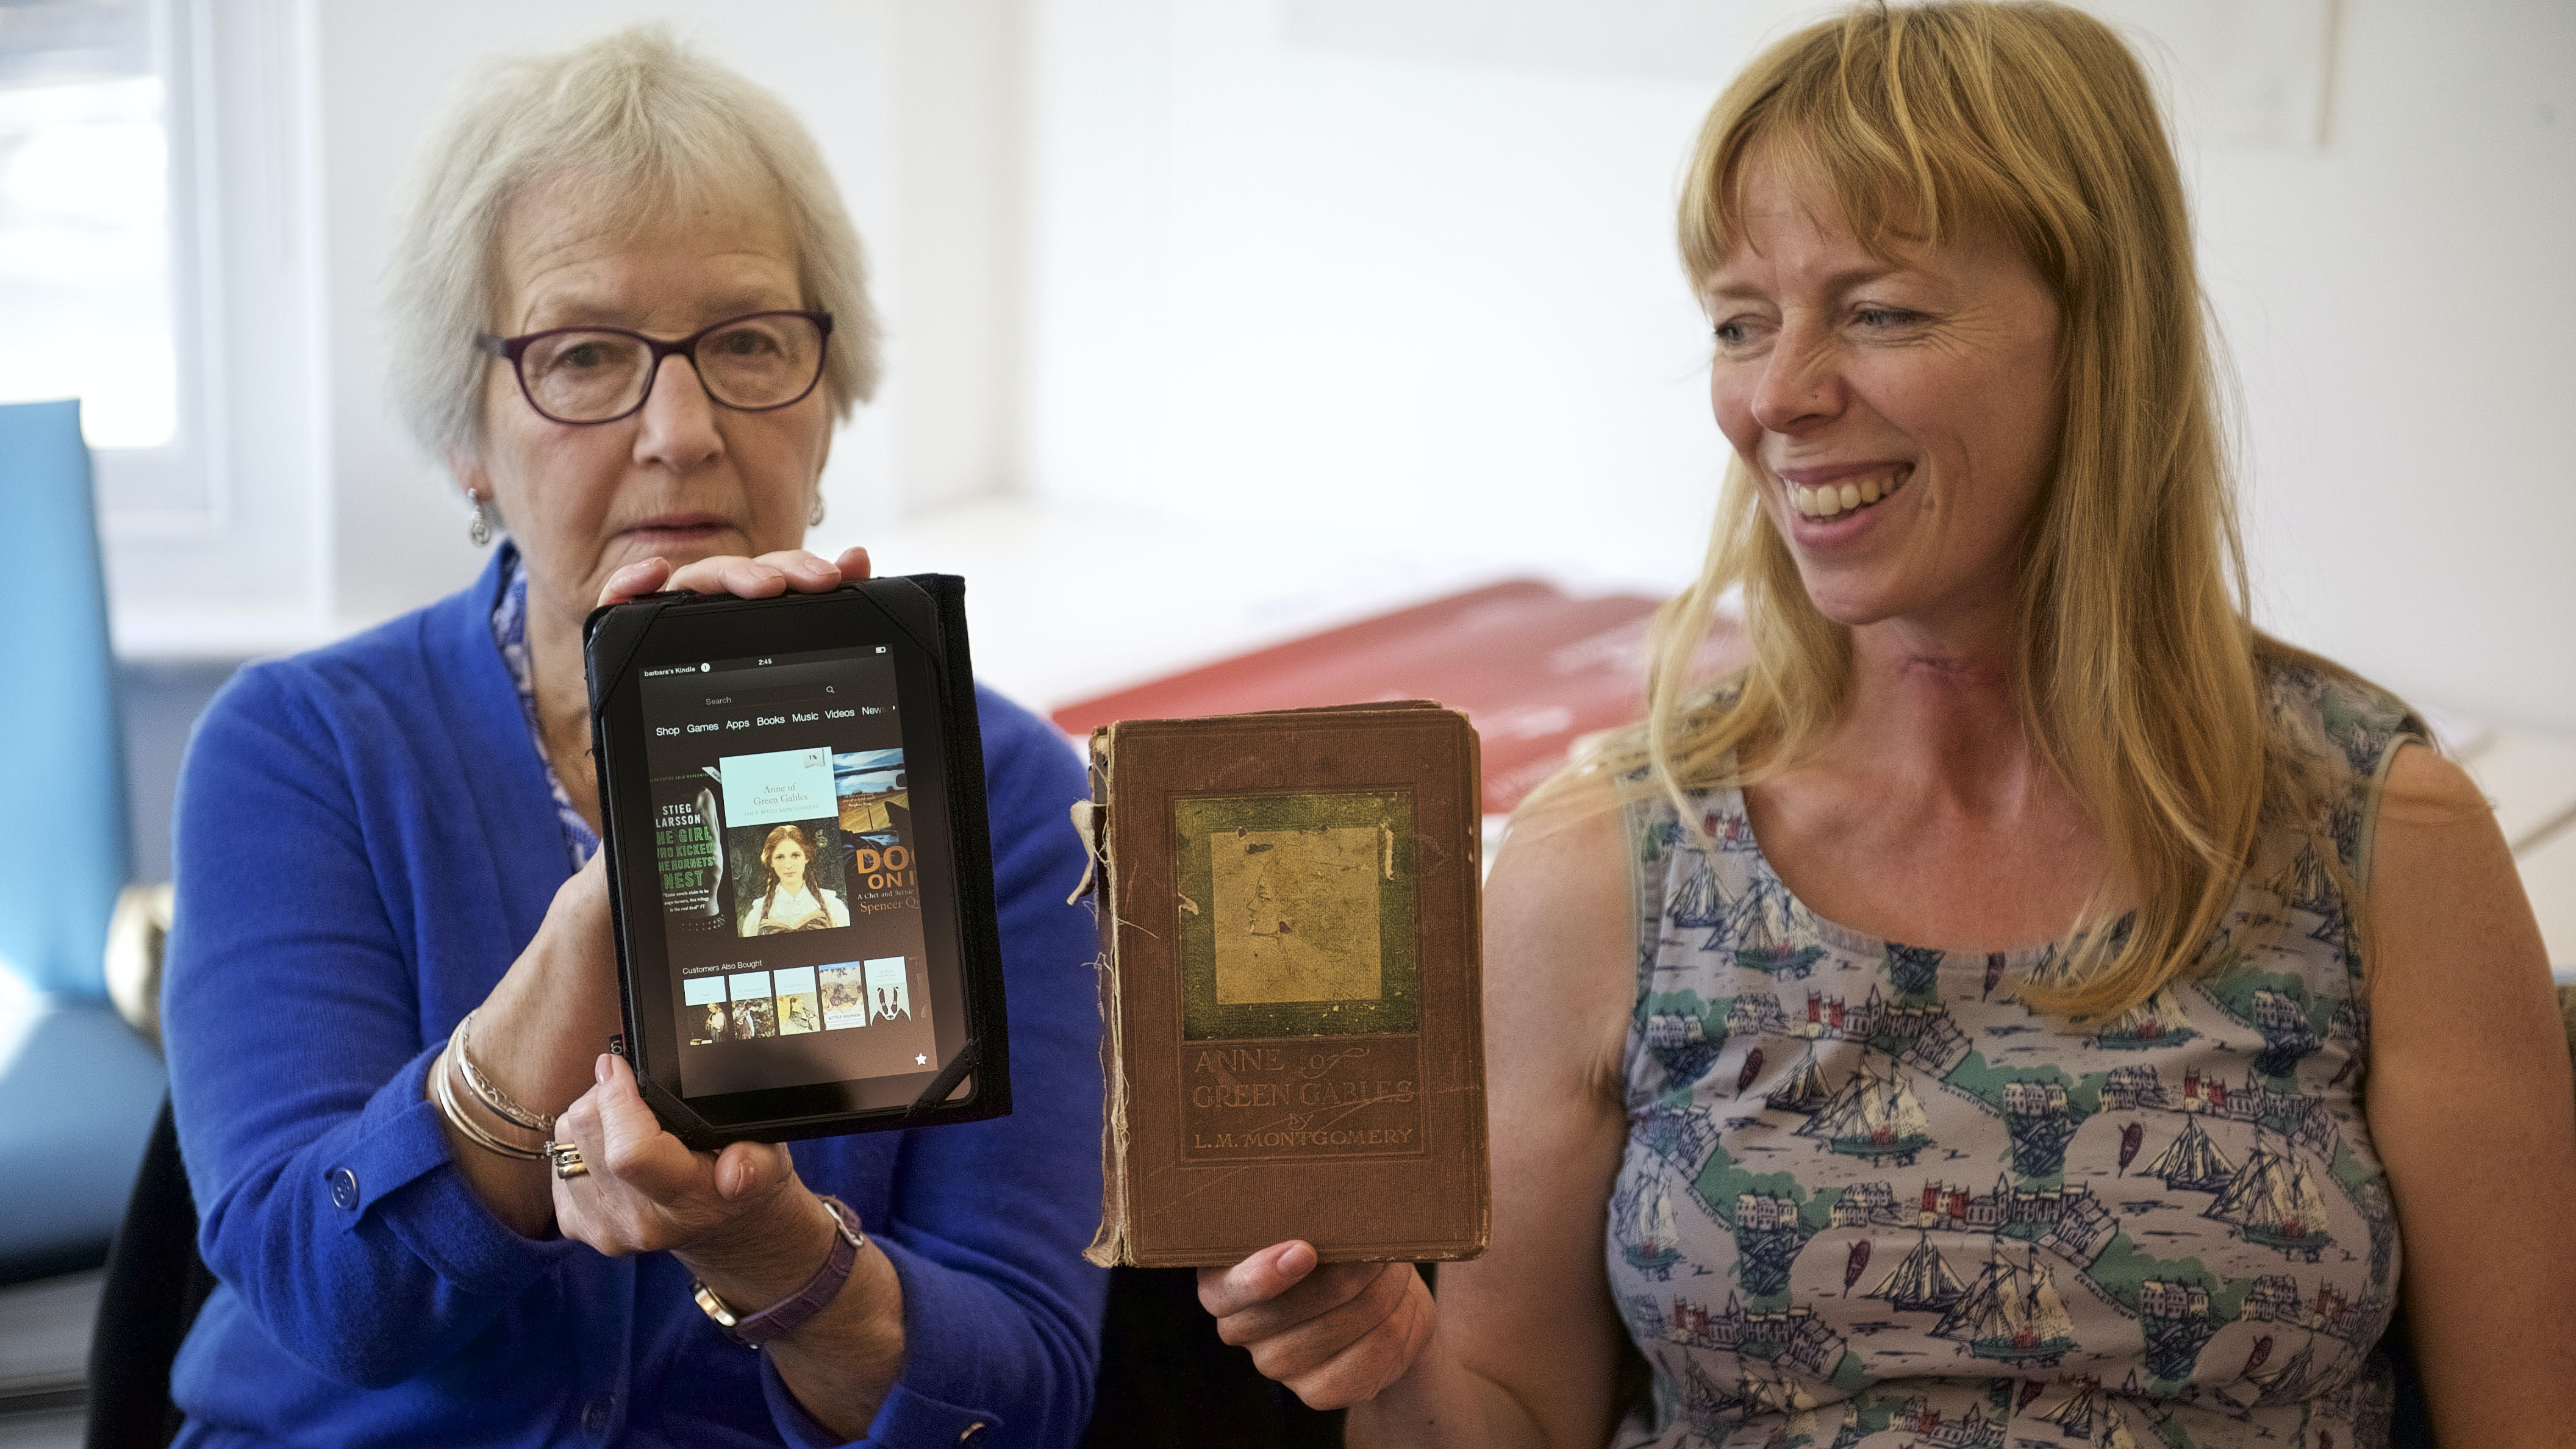 Mother and daughter Barbara and Jenni Creswell enjoyed Anne of Green Gables in both print and ebook format. Photo credit: Ray Gibson, Author provided